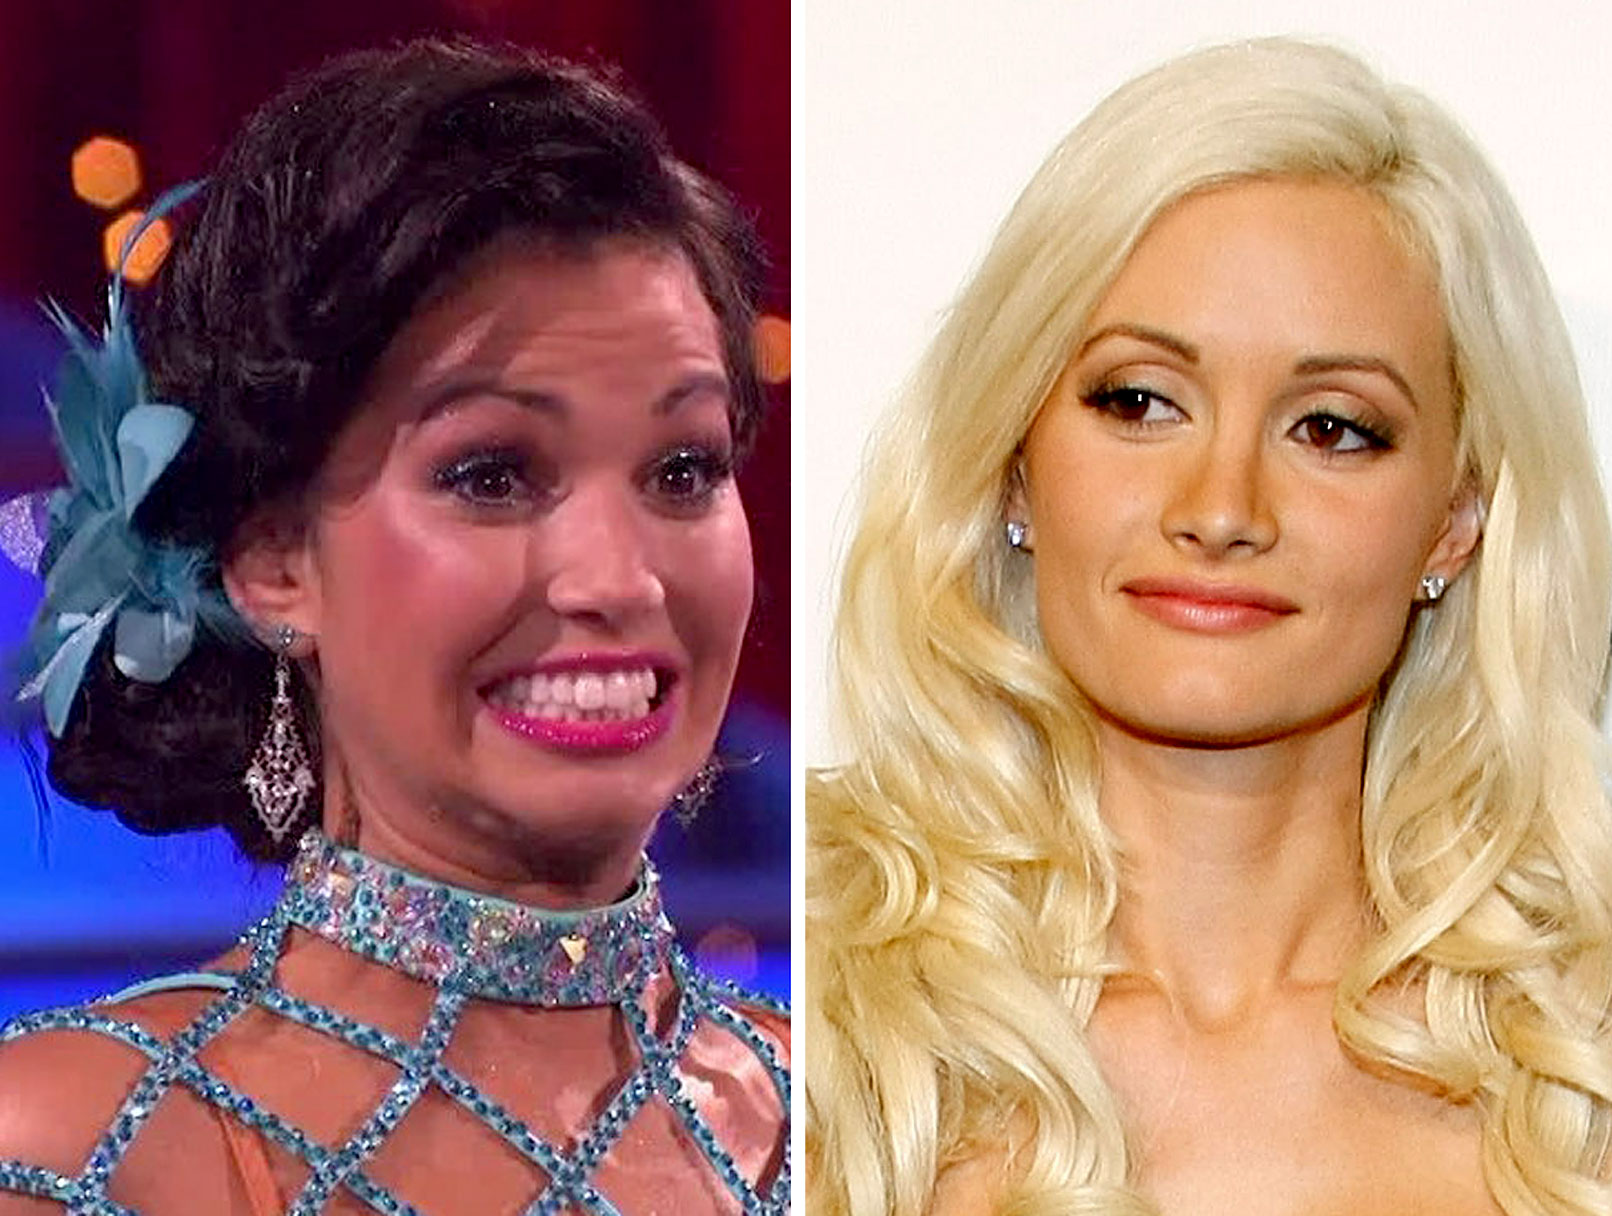 Holly Madison Names Melissa Rycroft as Her 'DWTS' Arch-Nemesis